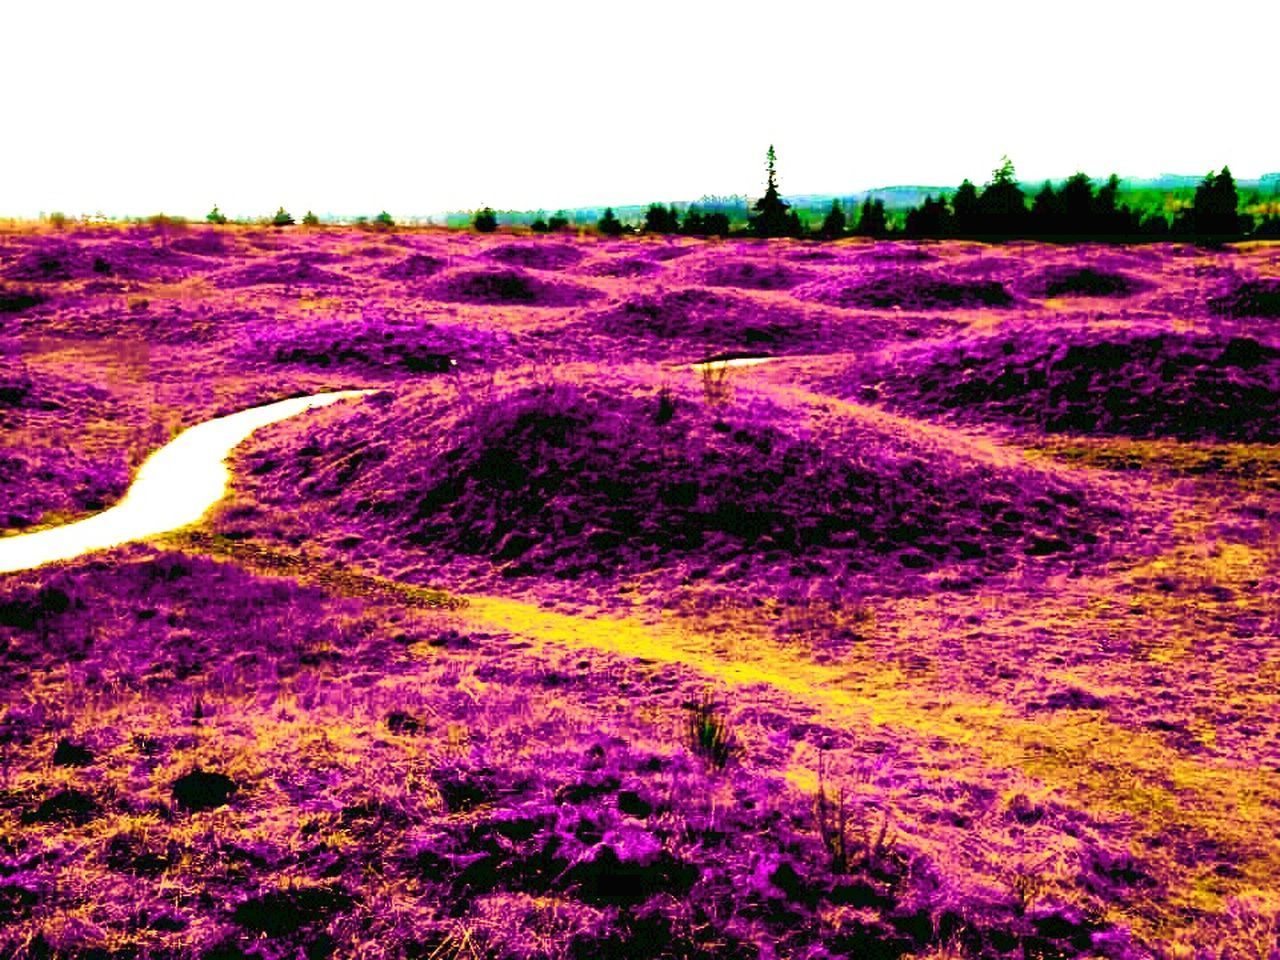 Alternate earth Backgrounds Outdoors Mounds Of Earth Alien Landscape Modern Art!!! Abstract Photography Abstract Hanging Out